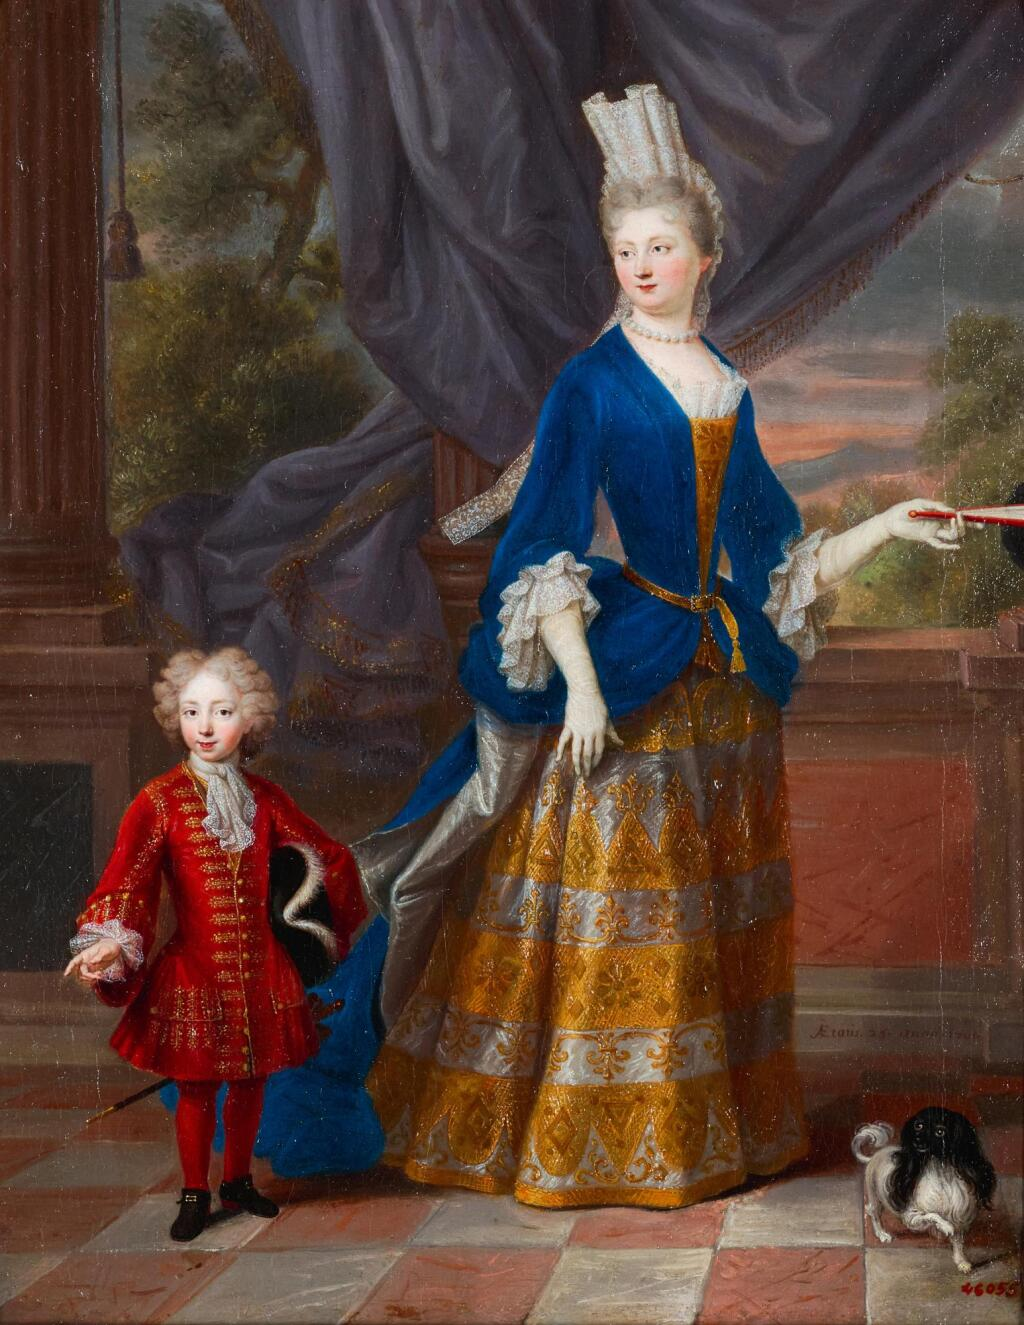 FRENCH SCHOOL, CIRCA 1700 | A portrait of an elegant lady, aged 25, together with a young boy and a spaniel